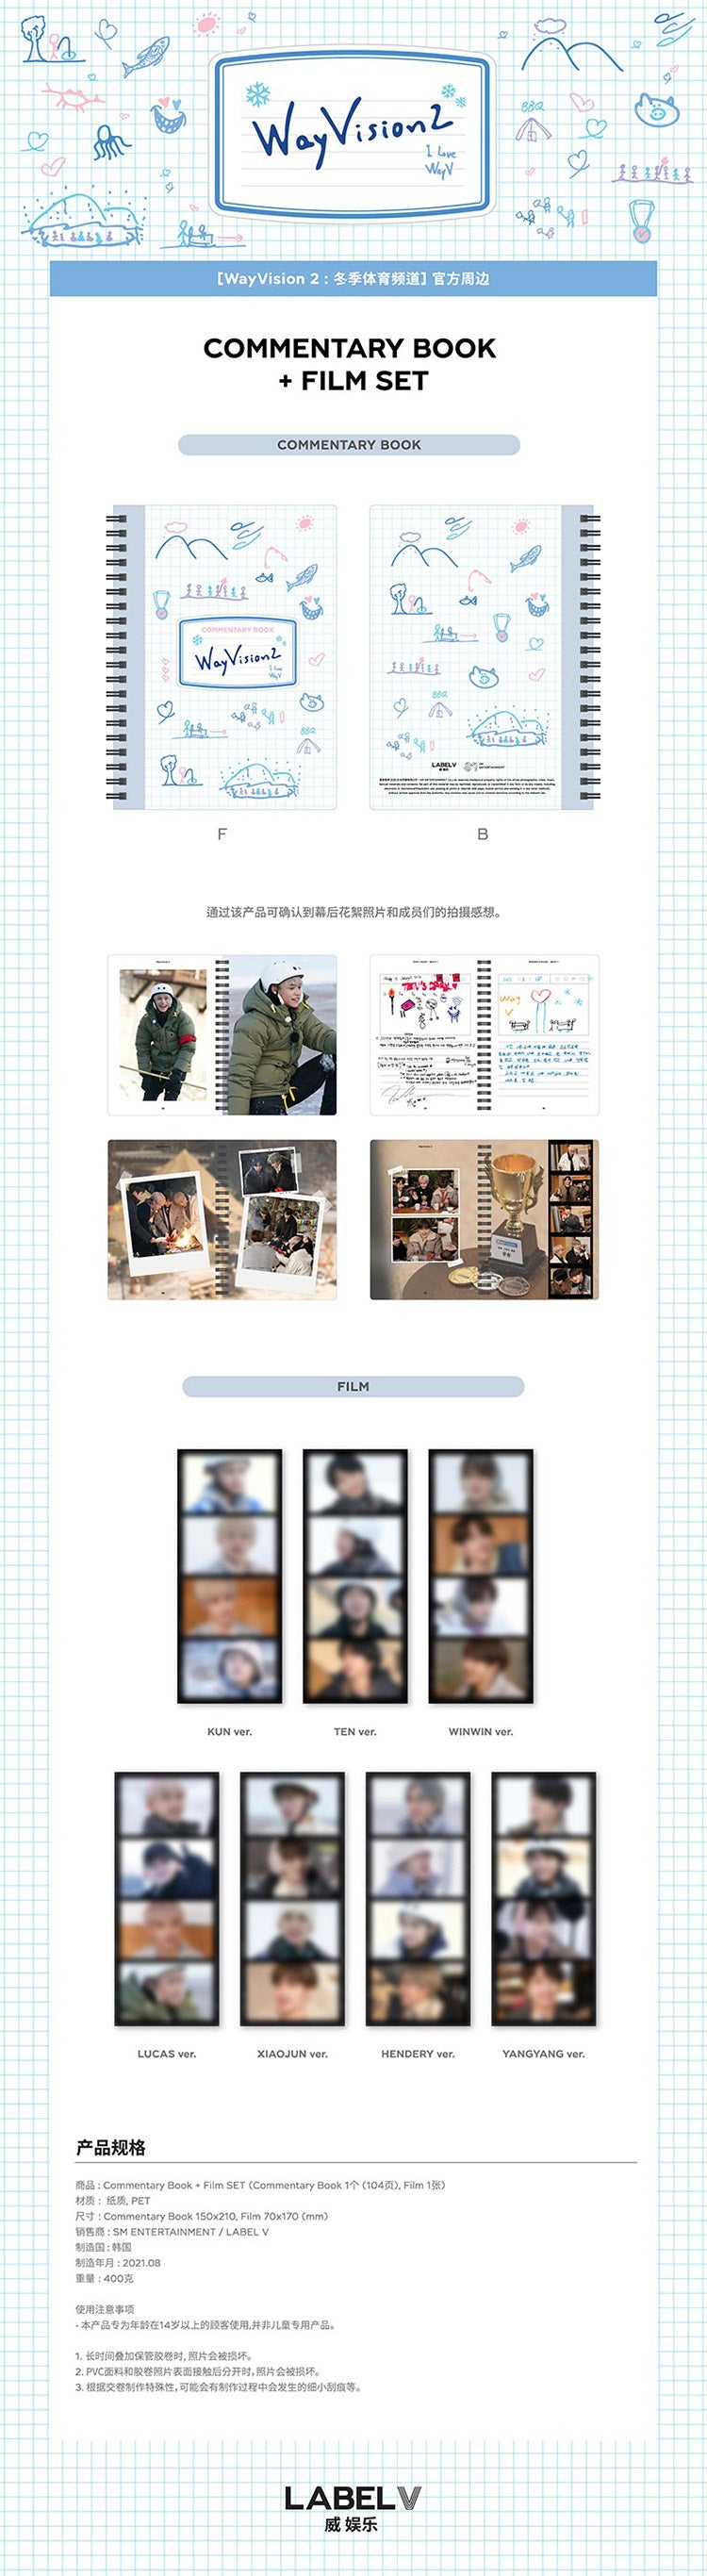 WAYV - Commentary Book and Film Set [Wayvision 2 Goods]